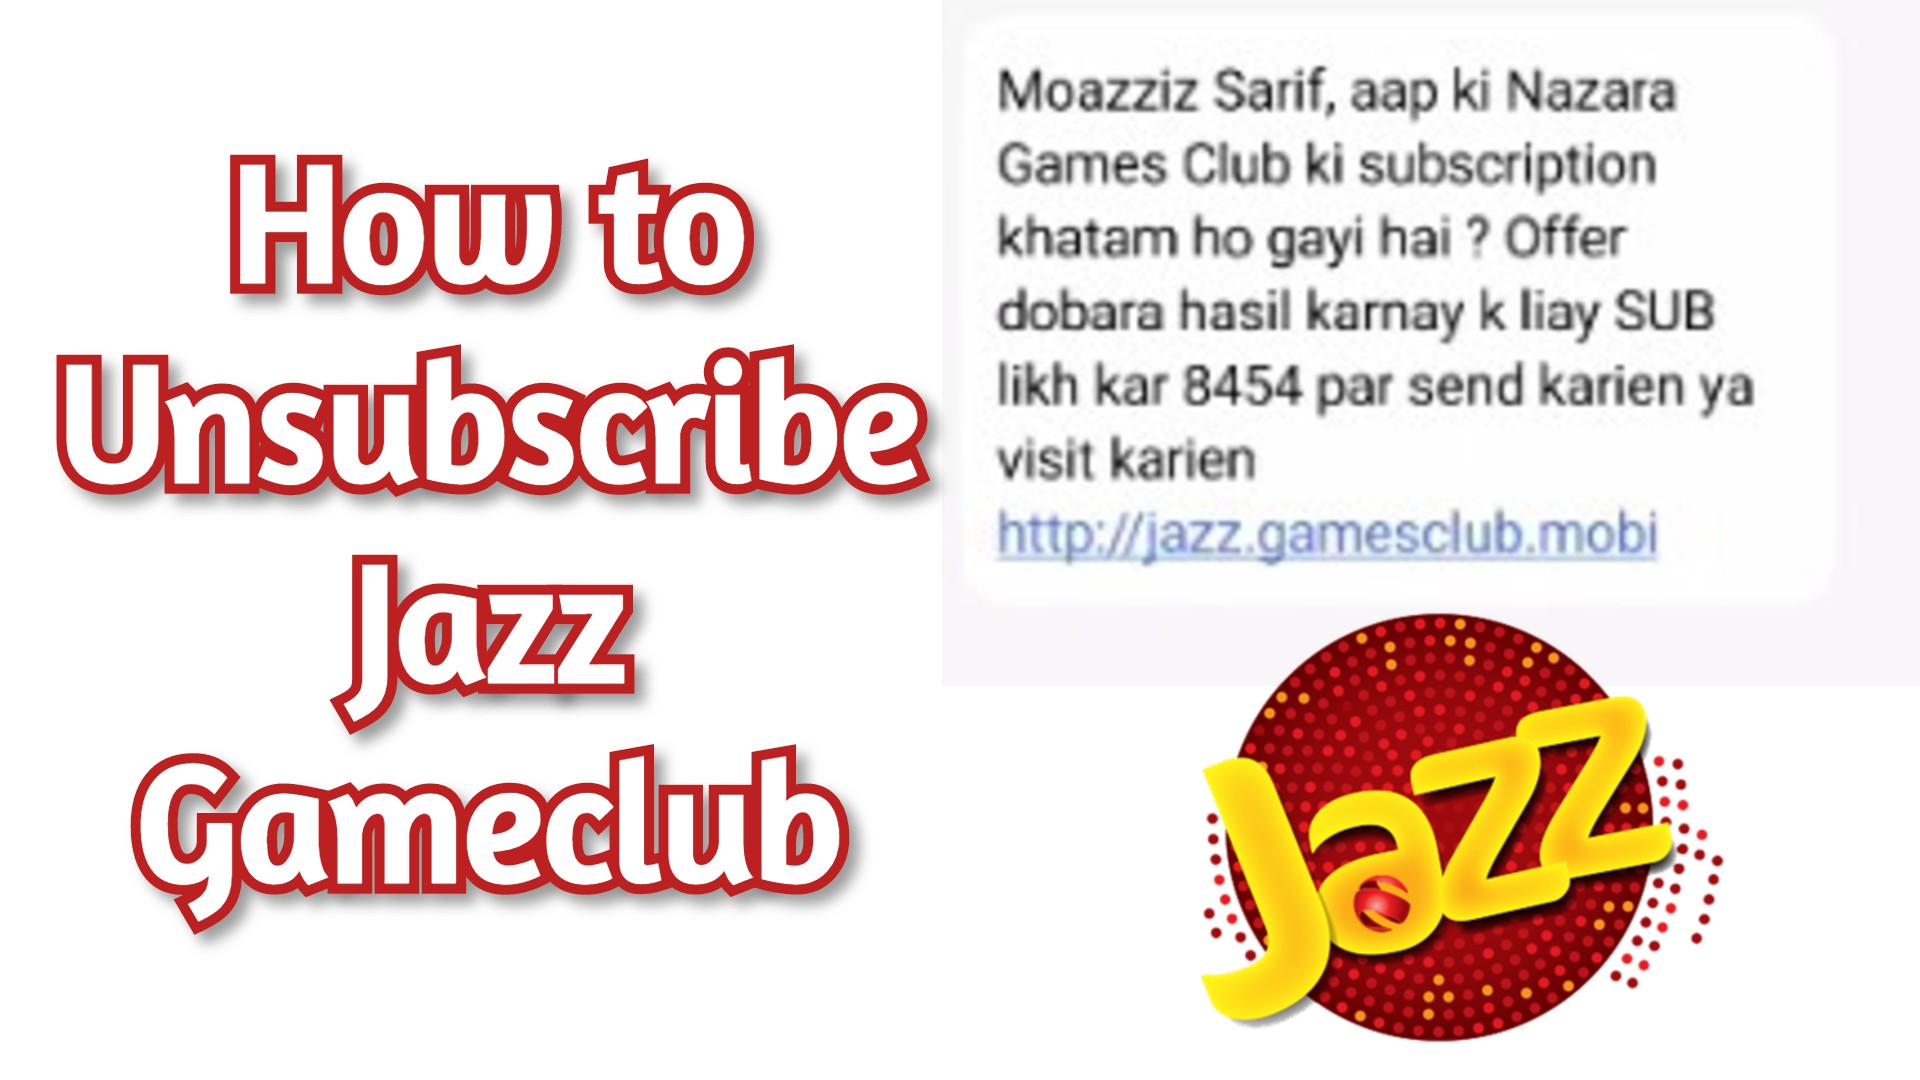 Jazz Gameclub Unsubscribe code 2021 - How to Unsubscribe Jazz Gameclub